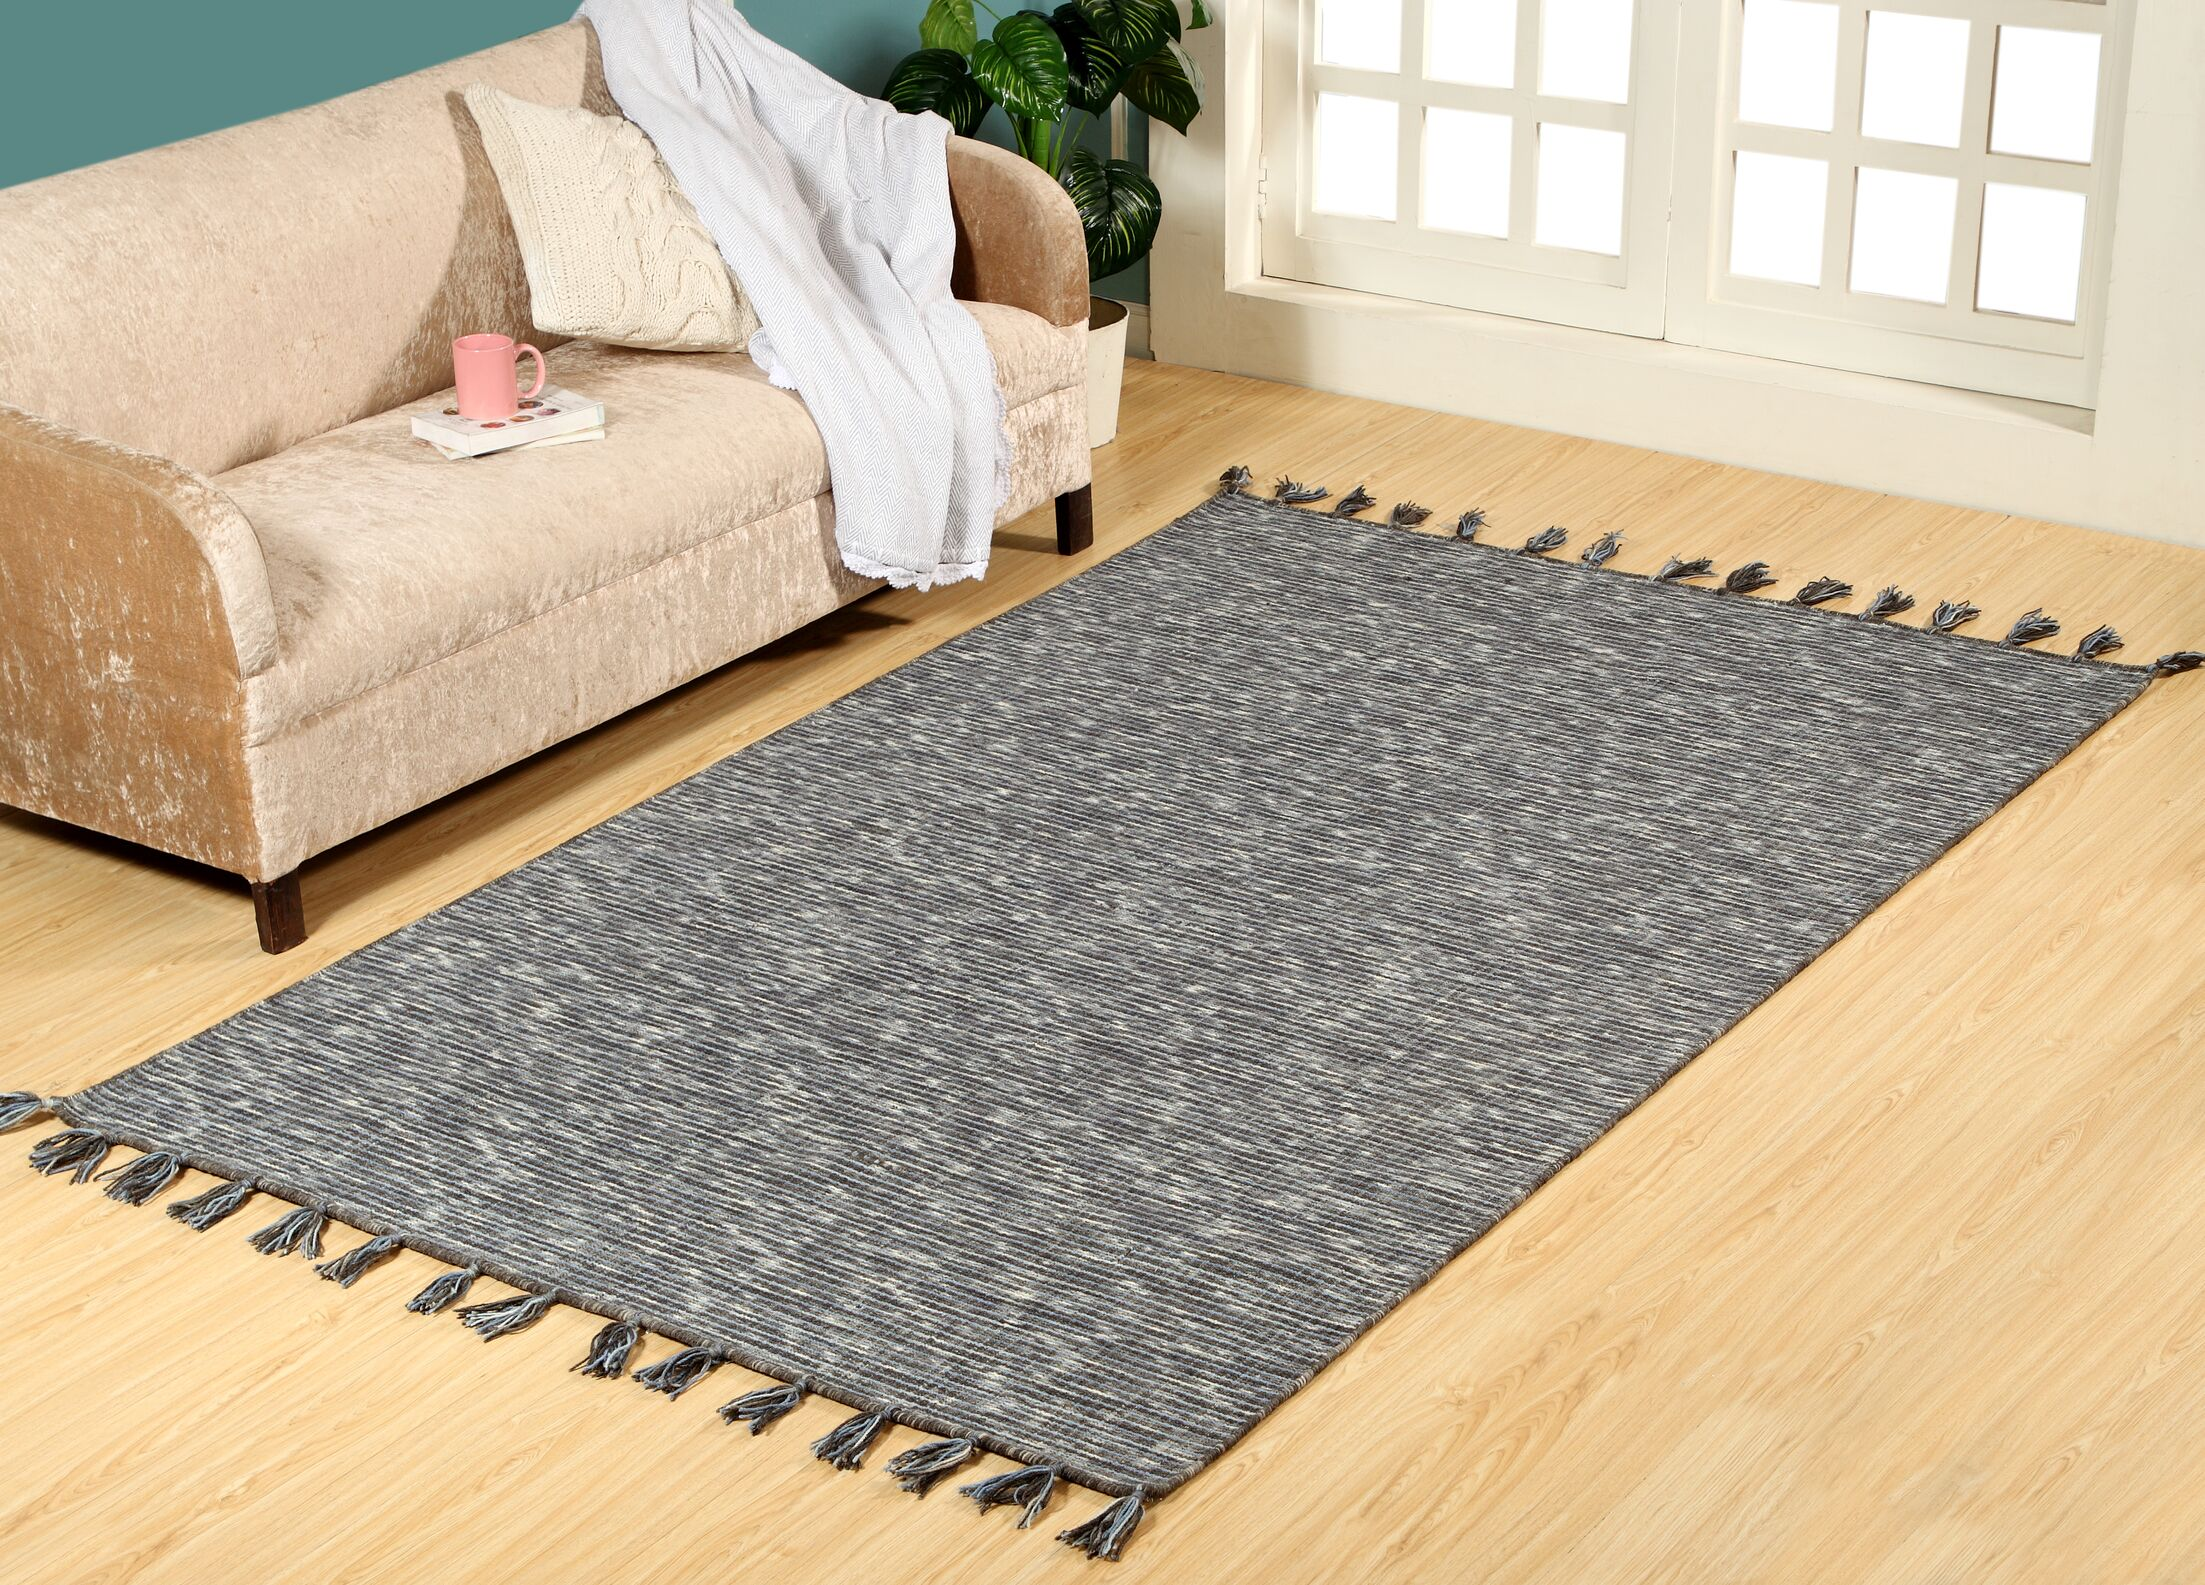 Willey Hand-Woven Wool Charcoal Area Rug Rug Size: Runner 2' x 7'6